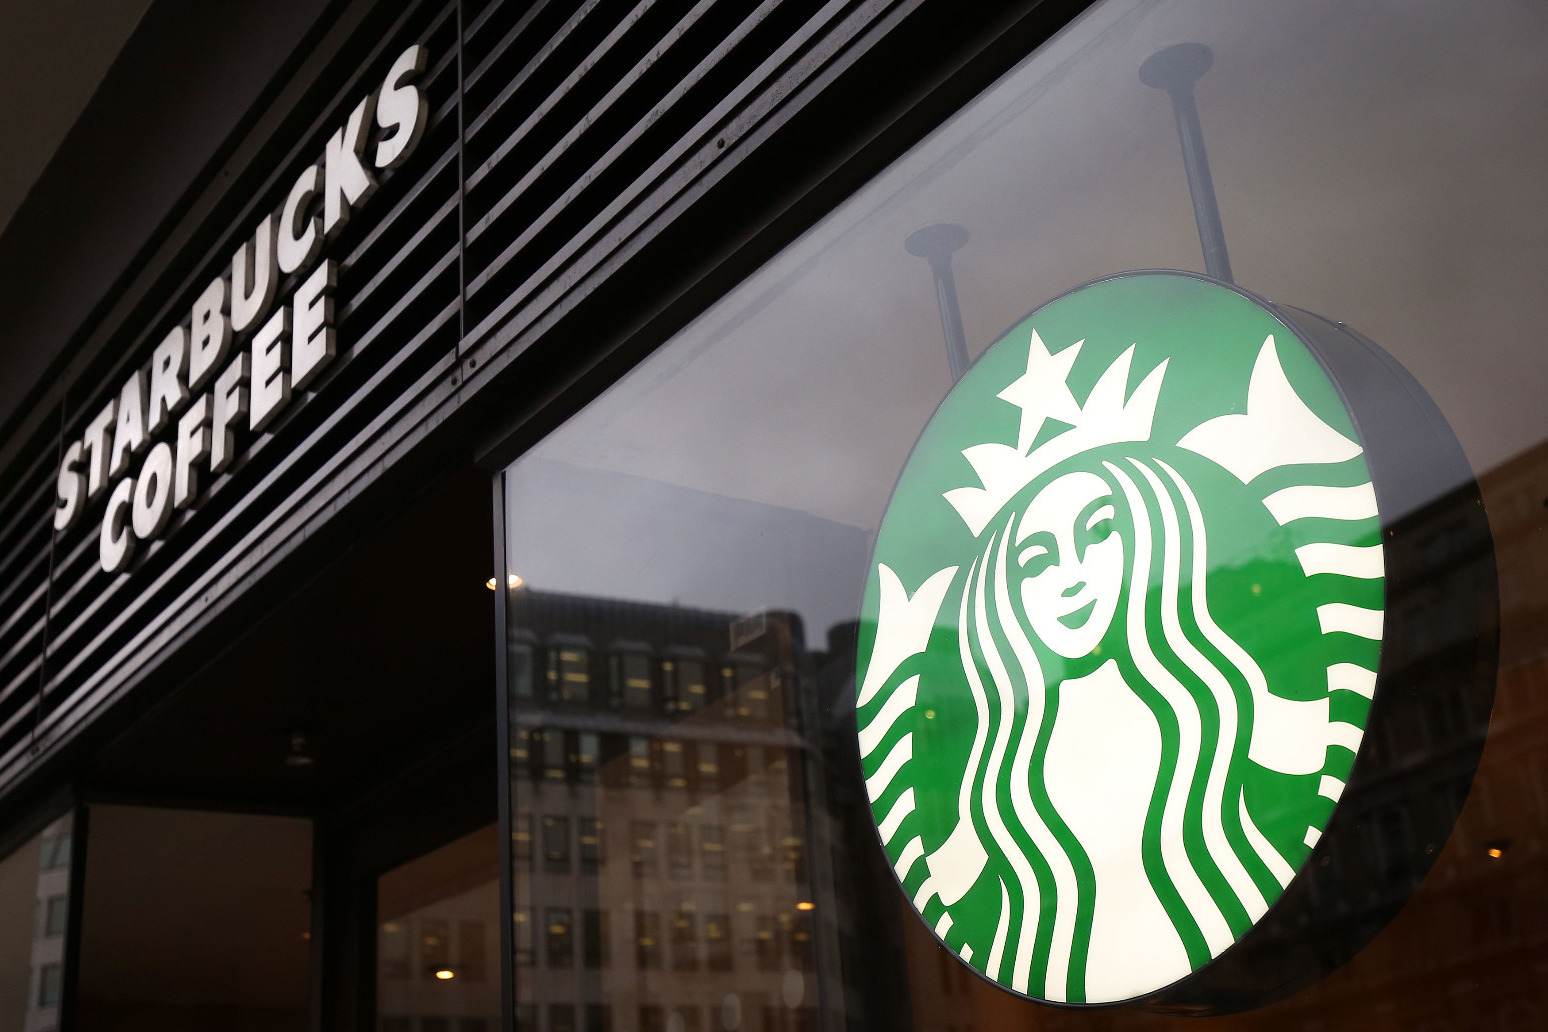 Starbucks creates 400 jobs across UK as demand rebounds